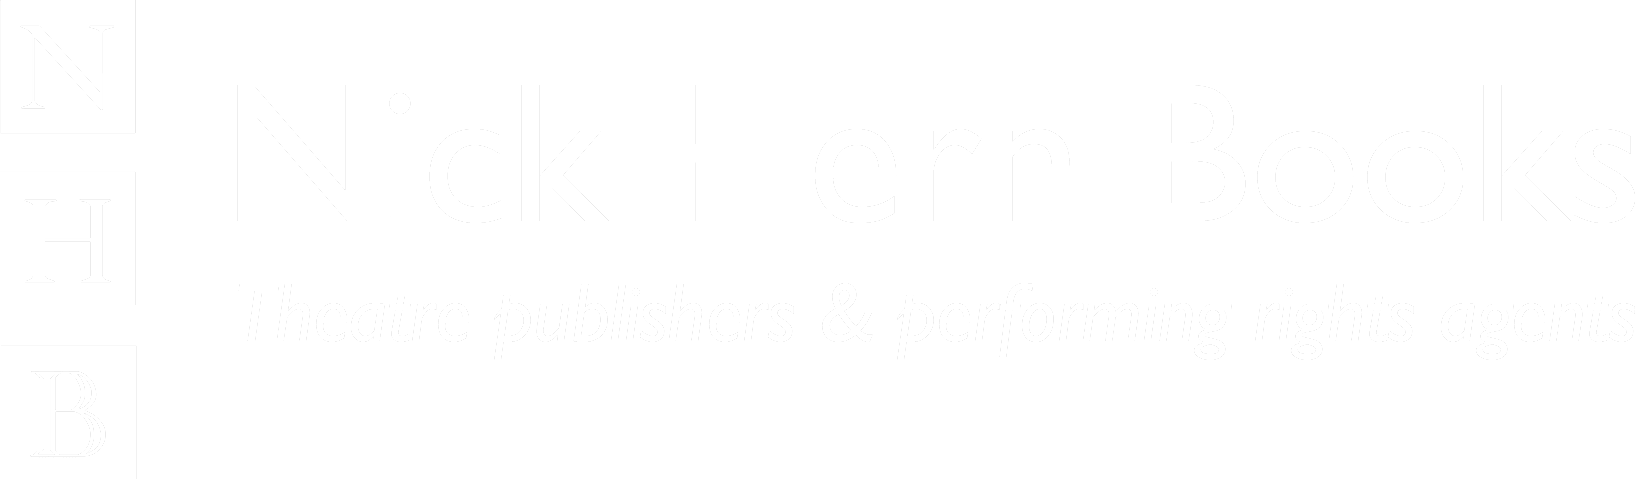 Link to Nick Hern Books website